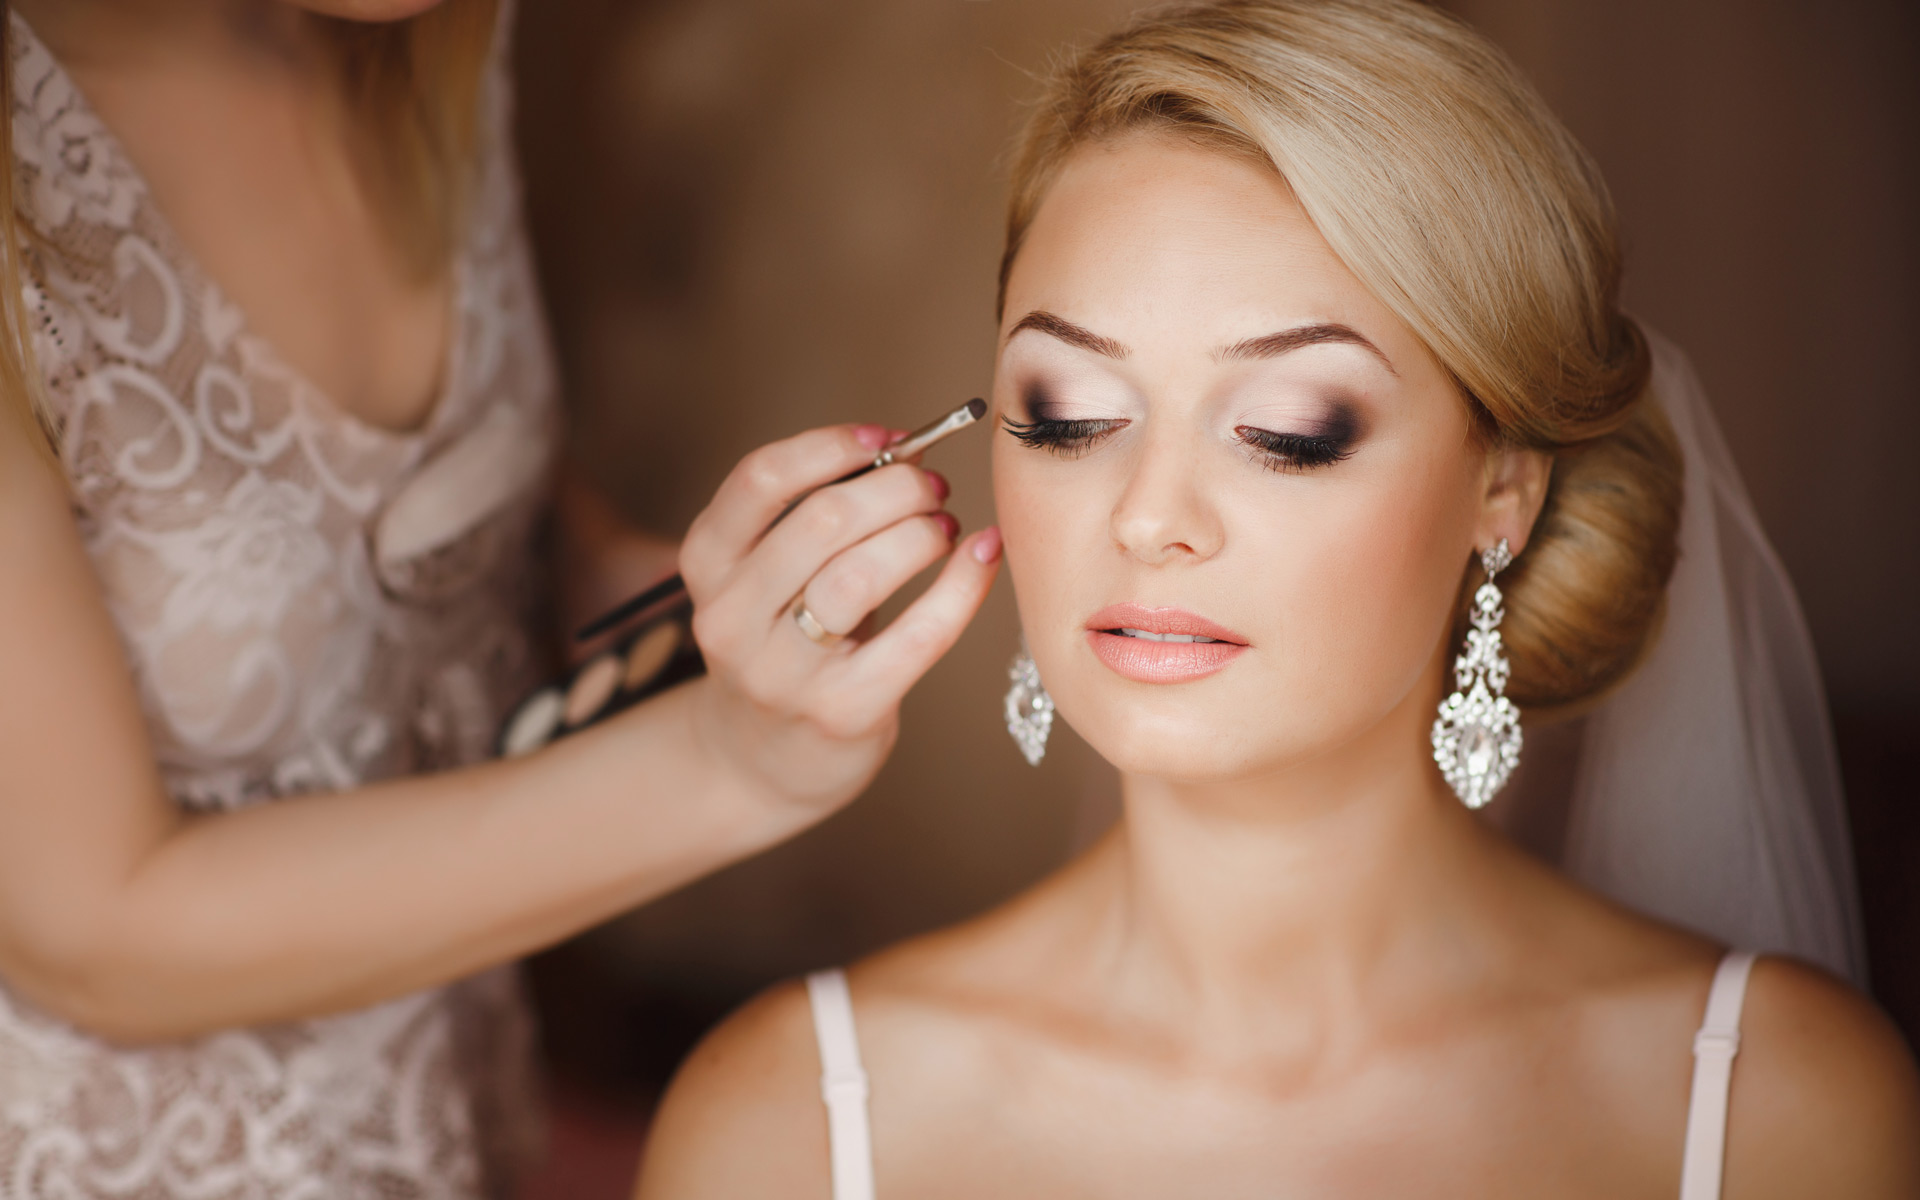 10 top tips: how to get the most out of your wedding hair & makeup